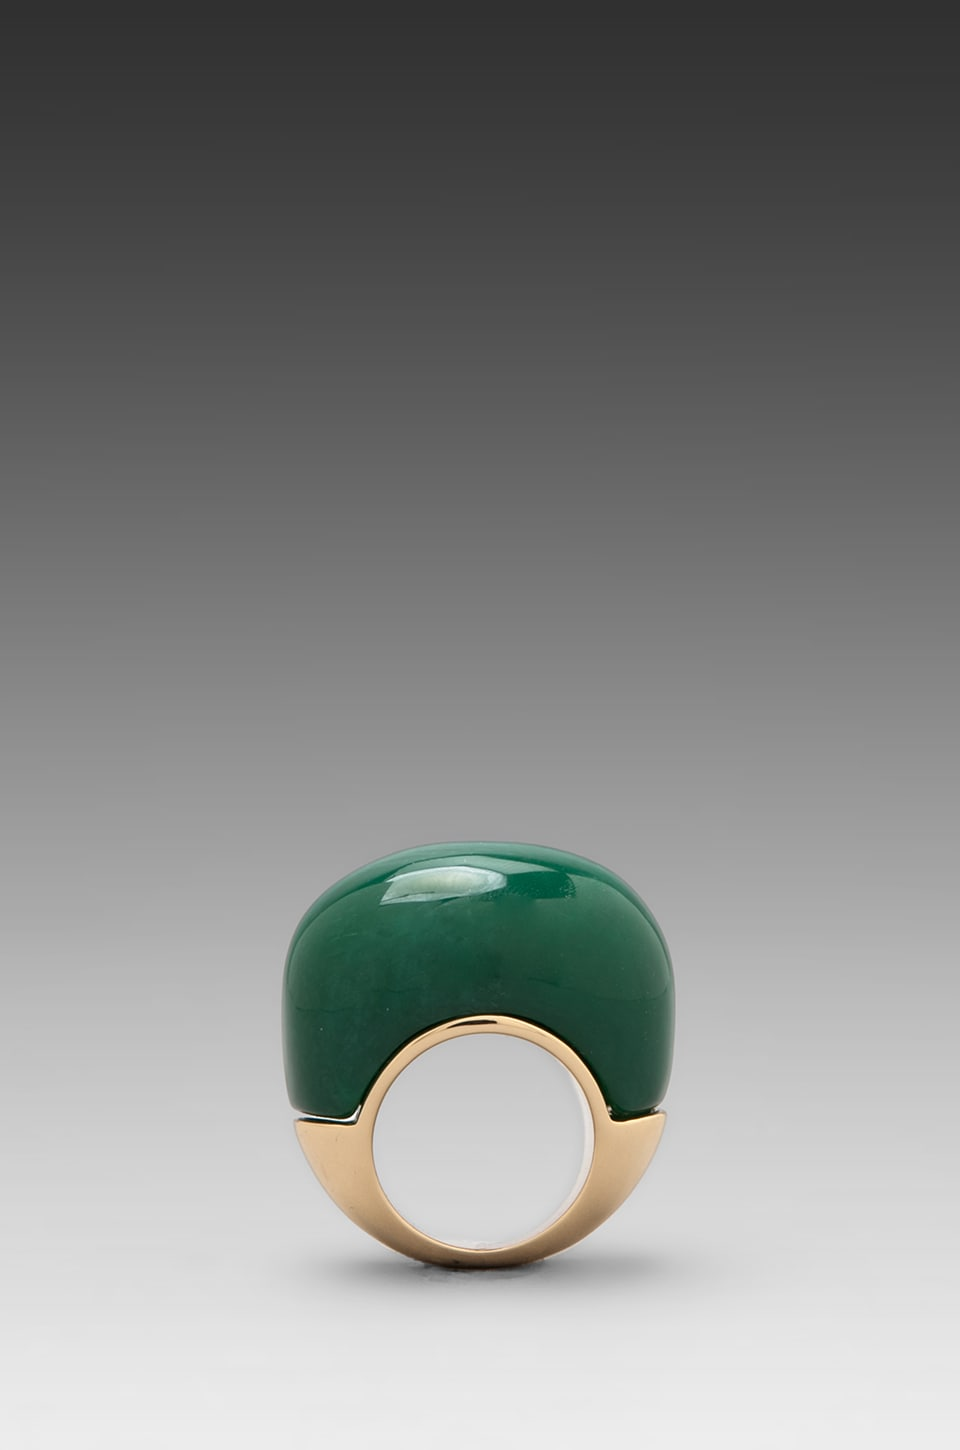 Trina Turk Marisa Ring in Malachite